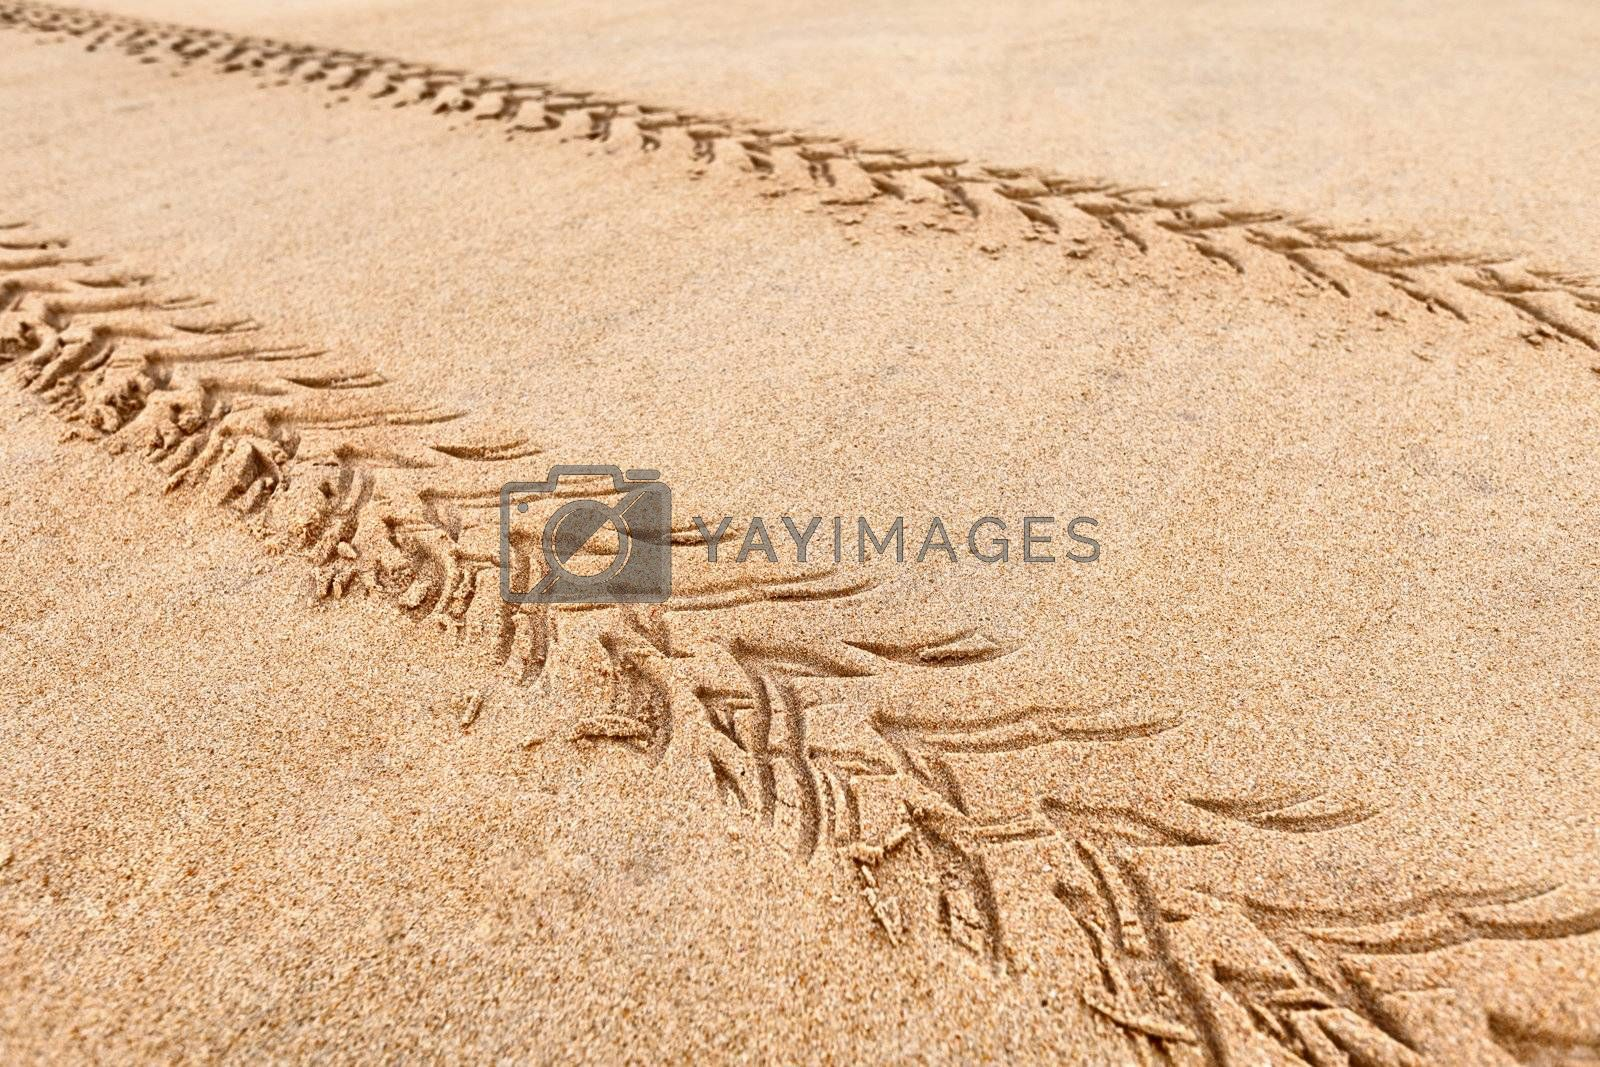 Traces of the quad on the beach sand